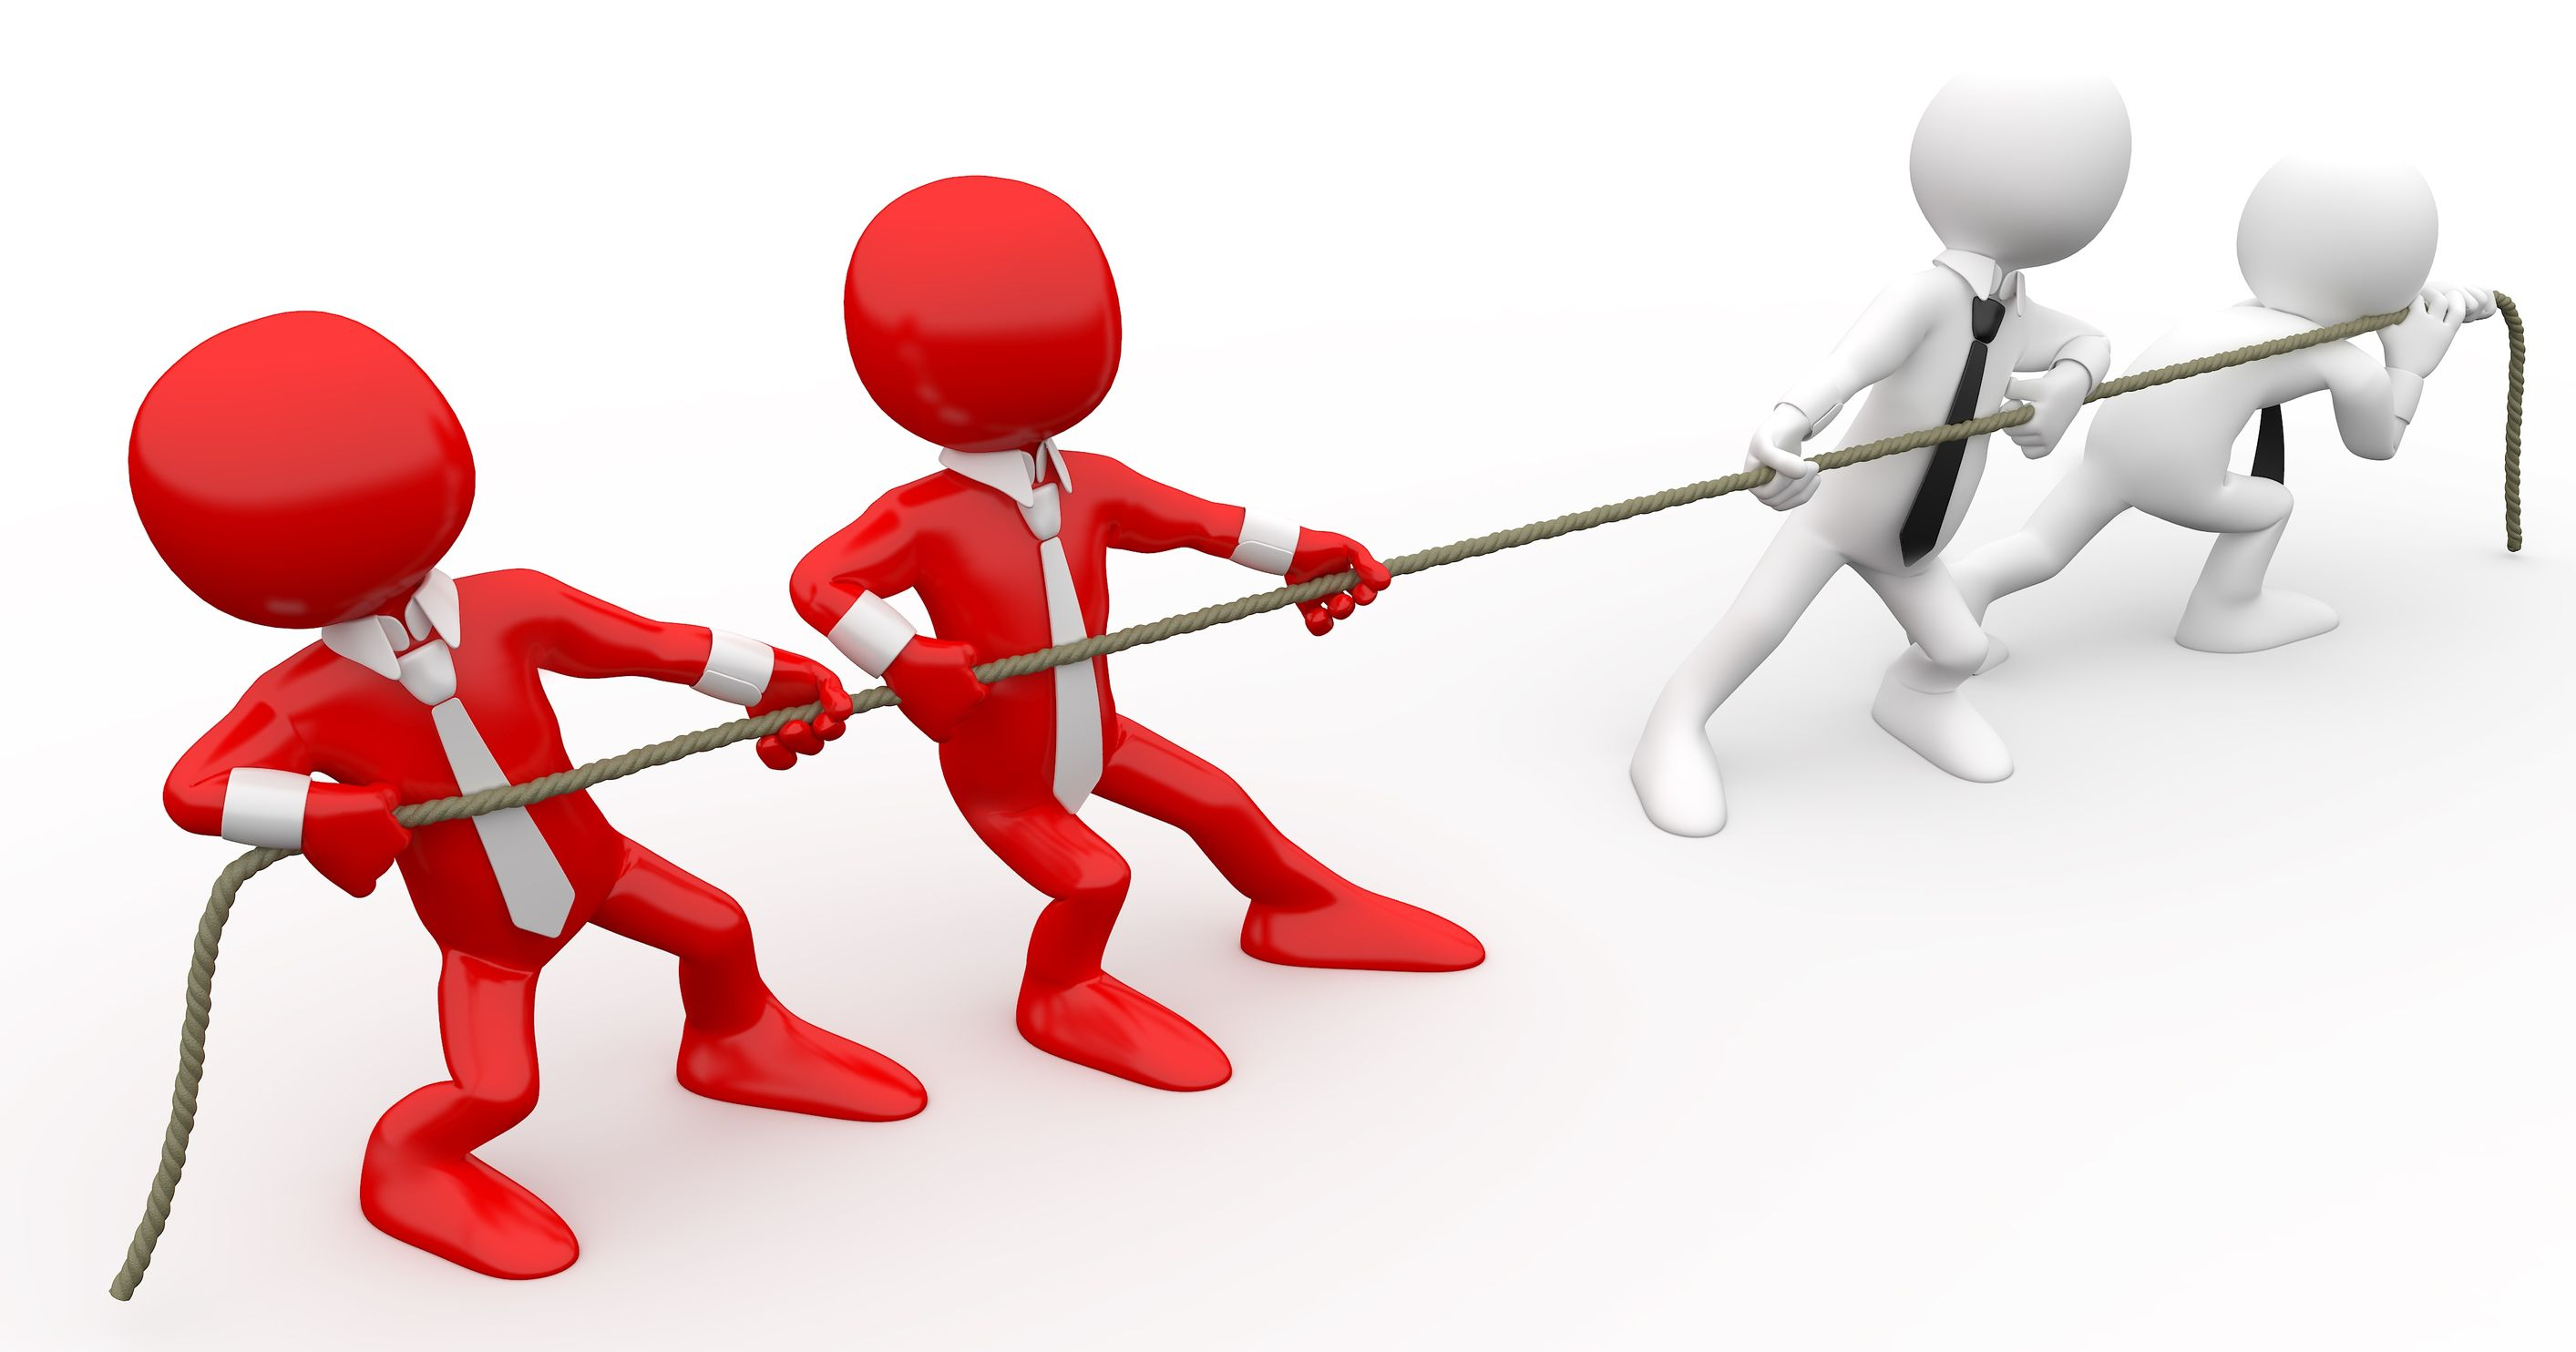 Free Workplace Conflict Cliparts, Download Free Clip Art.